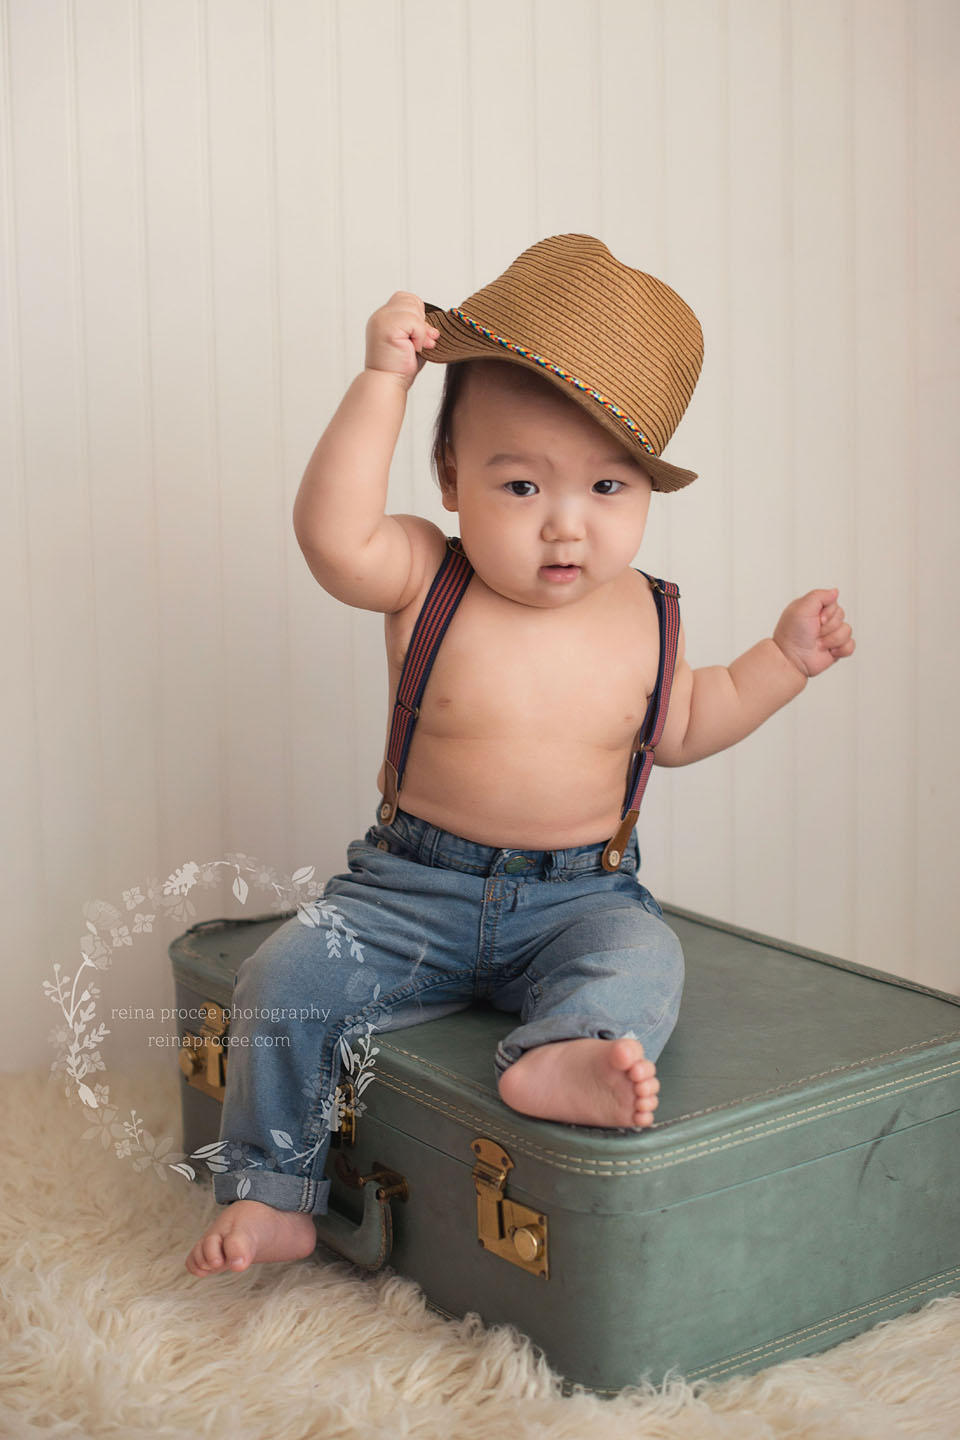 9 month old boy sitting on vintage suitcase playing with hat wearing jeans and suspenders